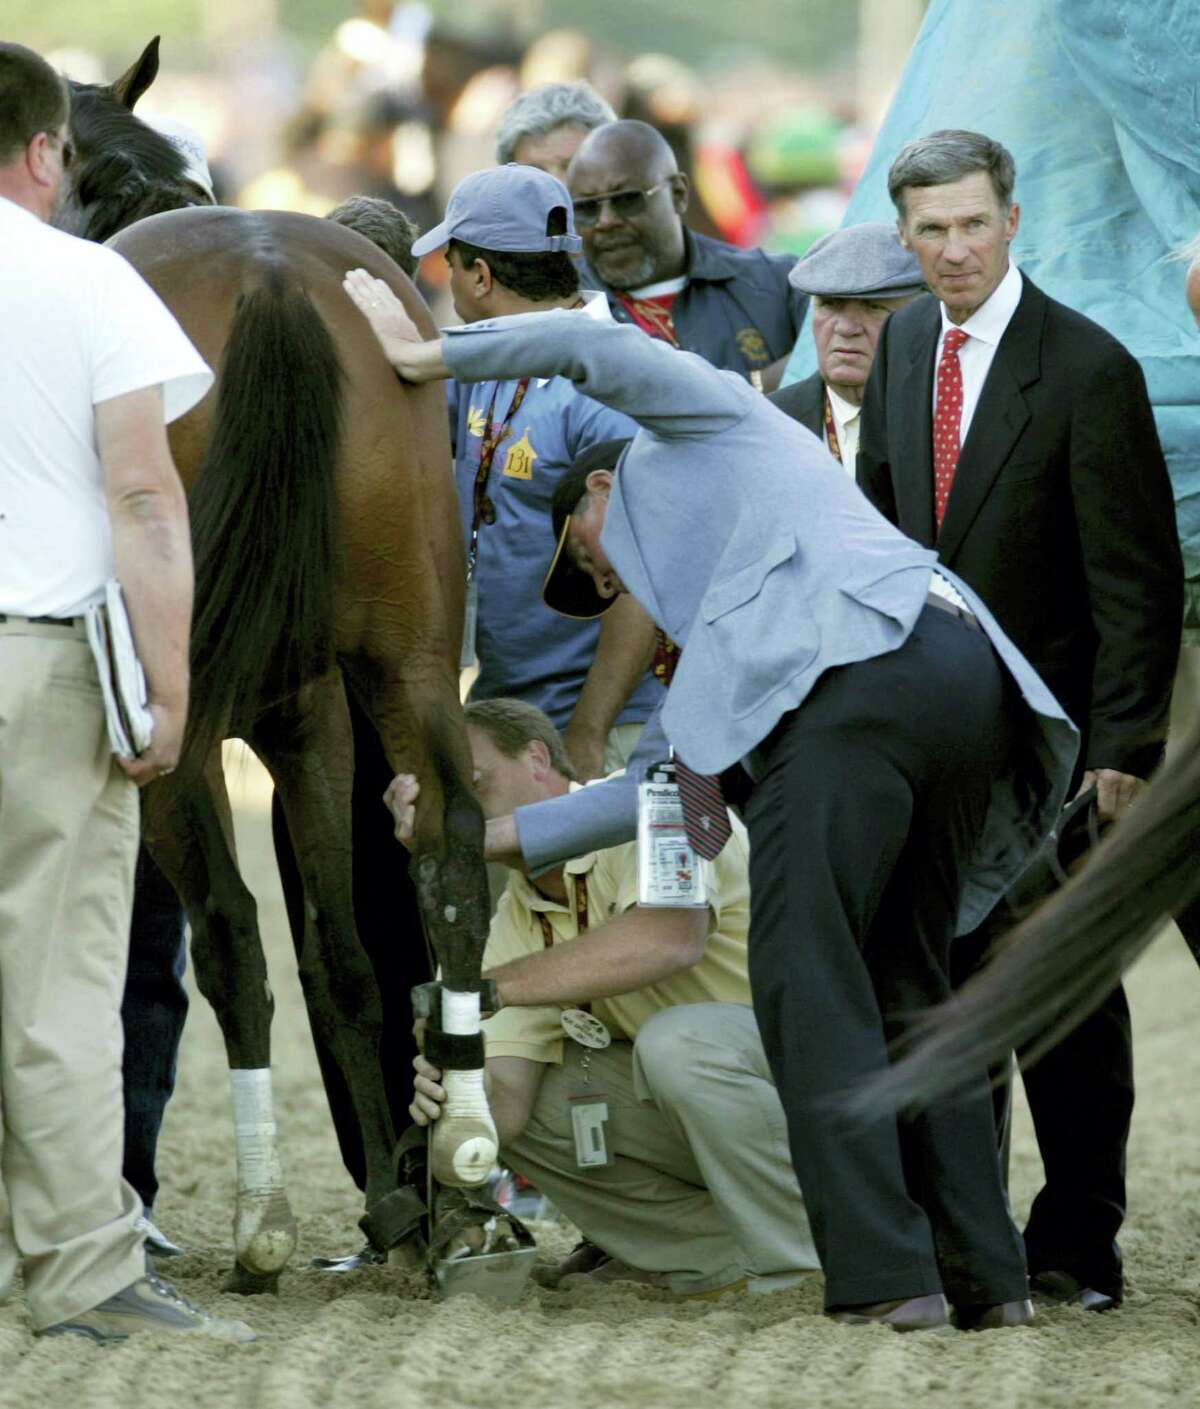 In this 2006 photo, Barbaro's right rear leg is stabilized on the track after he broke down near the start of the Preakness Stakes. Despite the efforts of an esteemed veterinarian, the unrestricted financial backing of the horse's owners and the outpouring of love from racing fans around the world, the injuries Barbaro sustained at the Preakness ultimately led to his death.